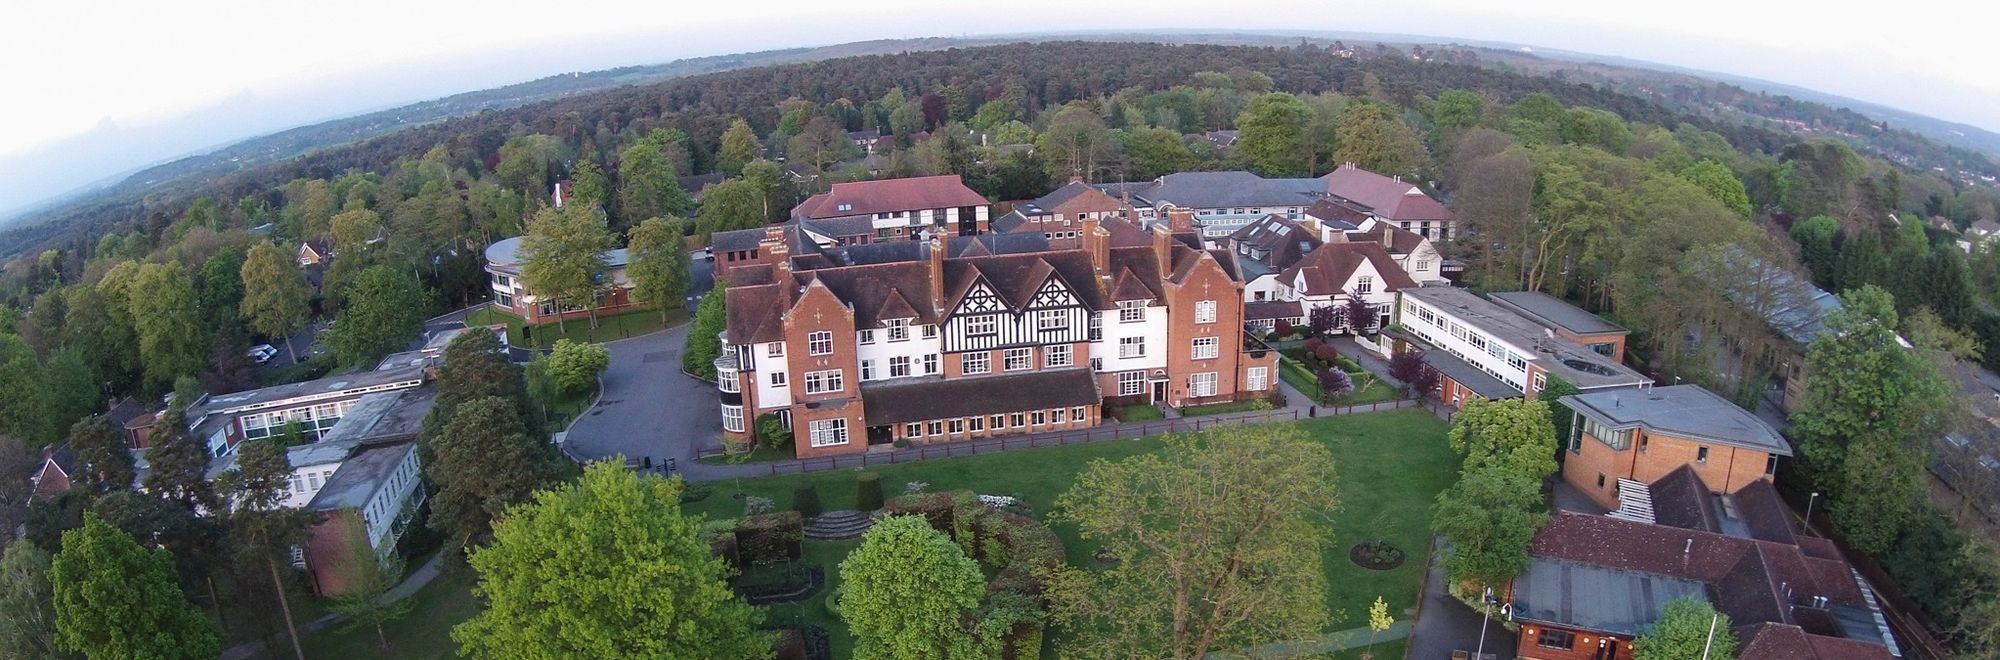 OR Home page header - aerial photo